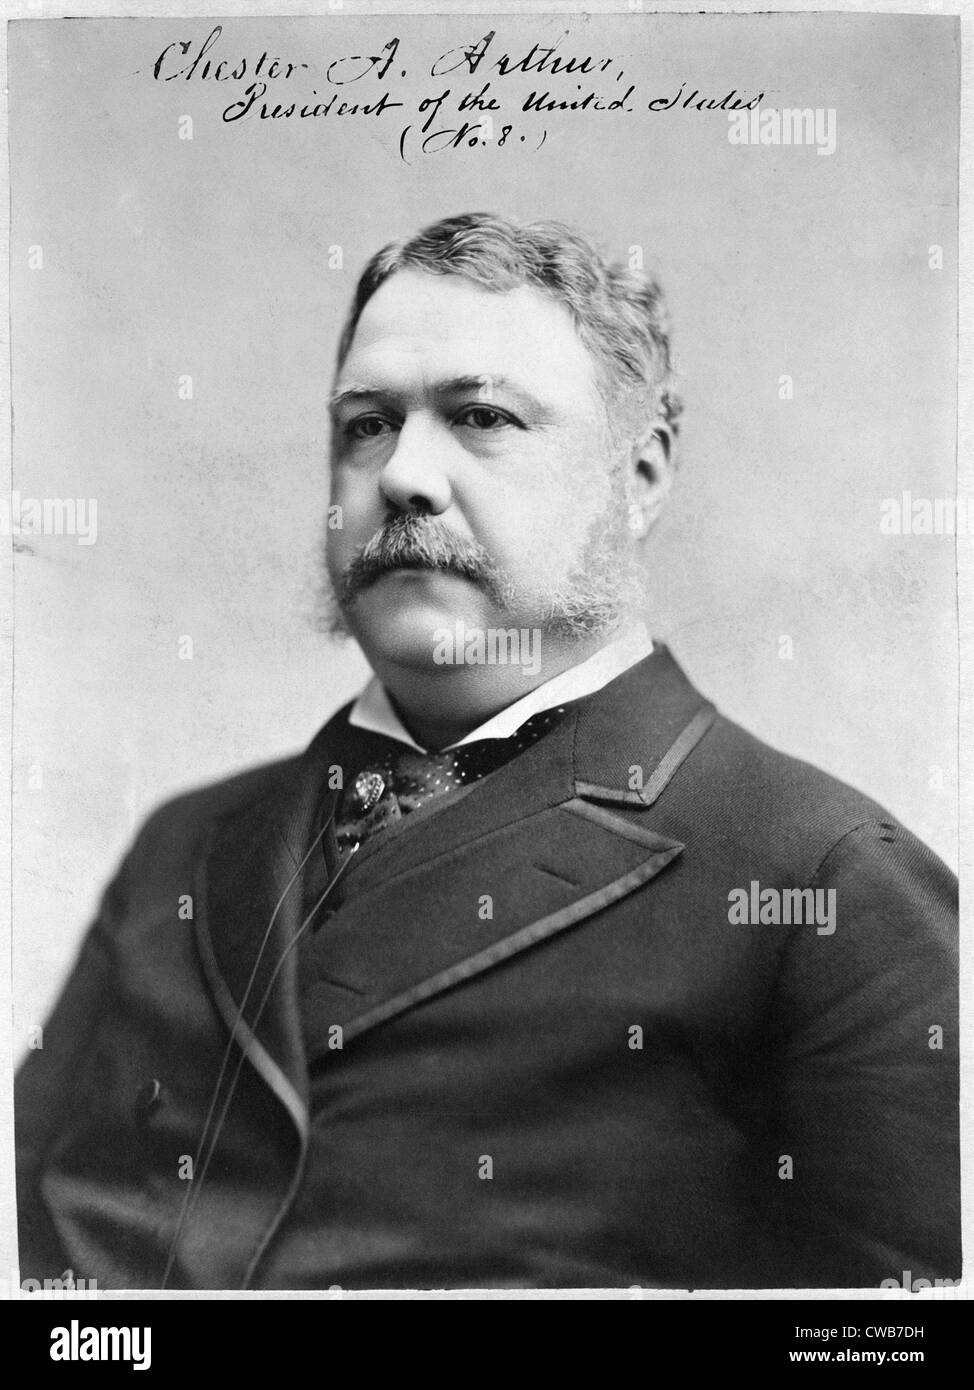 Chester A. Arthur, President of the United States. Photograph, 1882 - Stock Image